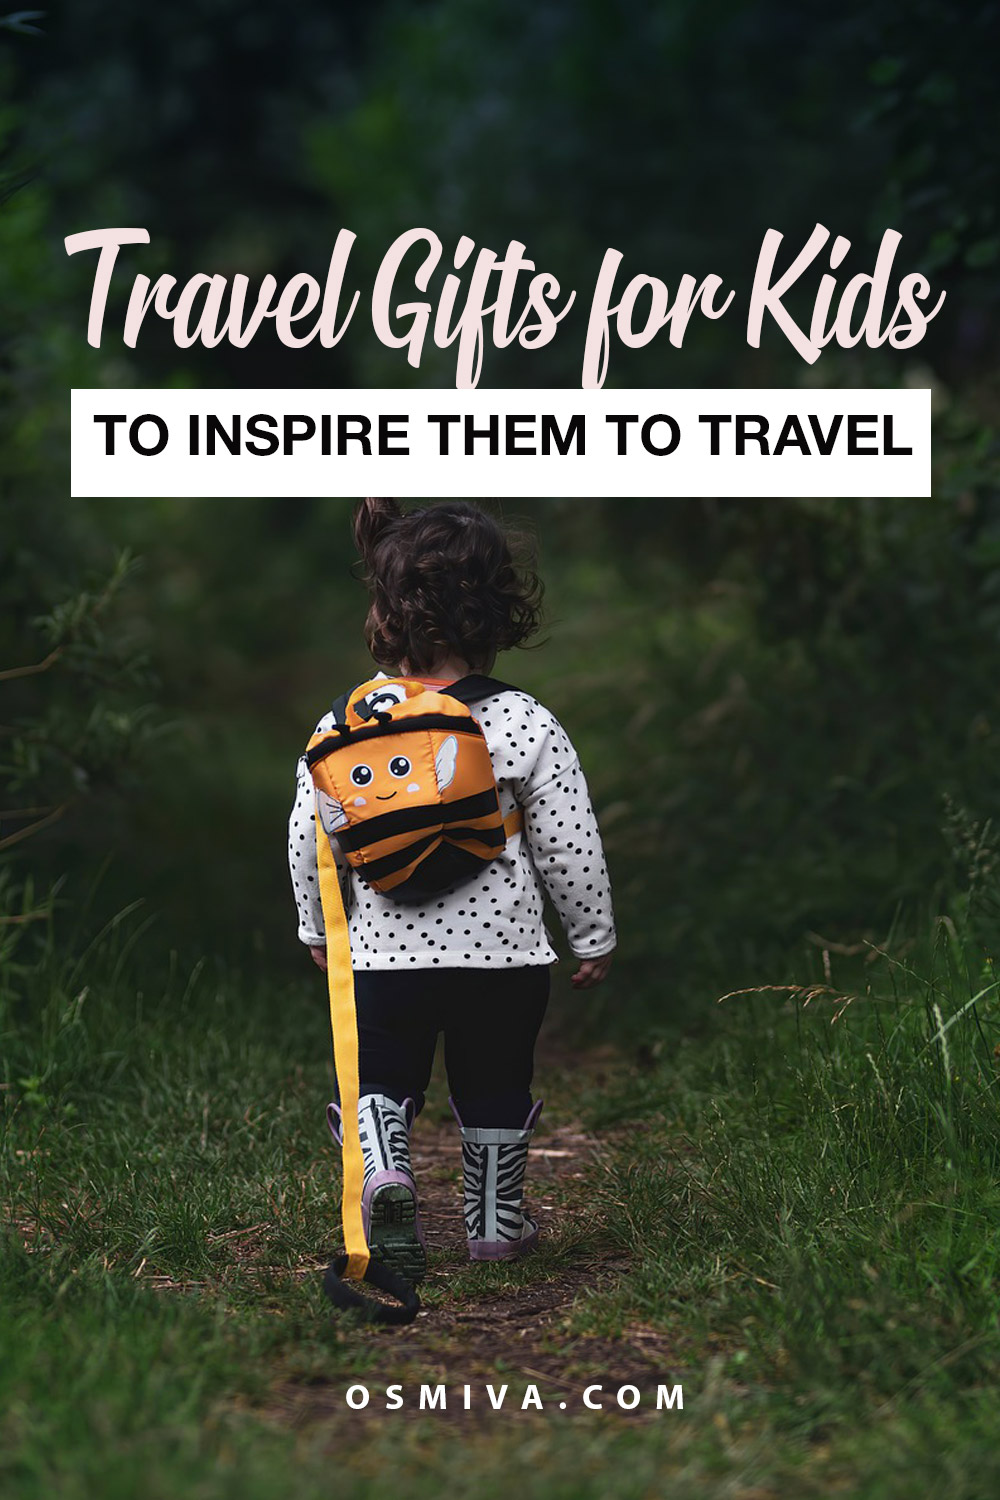 Travel Gifts for Kids To Inspire Them To Travel. List of fun travel gifts for kids to instill love for travel at a young age. Inspire your kids to become travelers! #travelgifts #travelkids #travelingkids #kidgifts